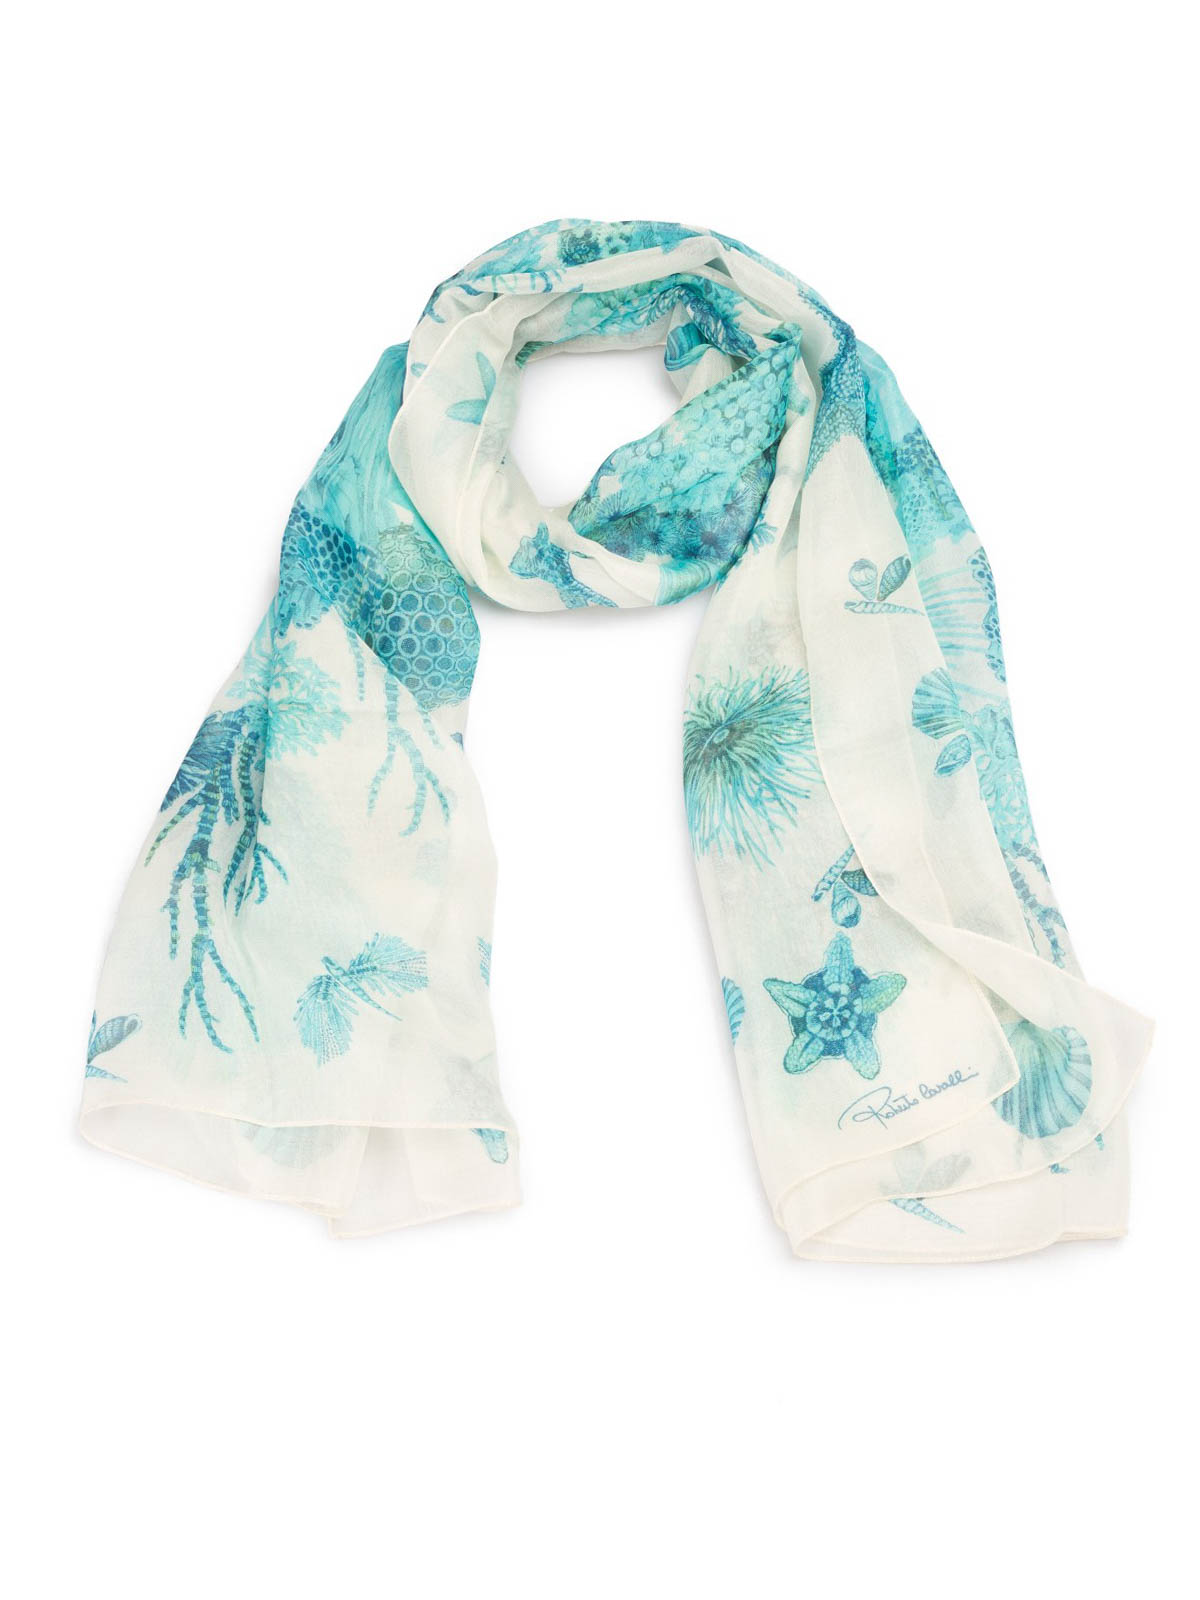 beb6e8bbc9df1 Roberto Cavalli - Coral Reef light blue silk scarf - scarves ...